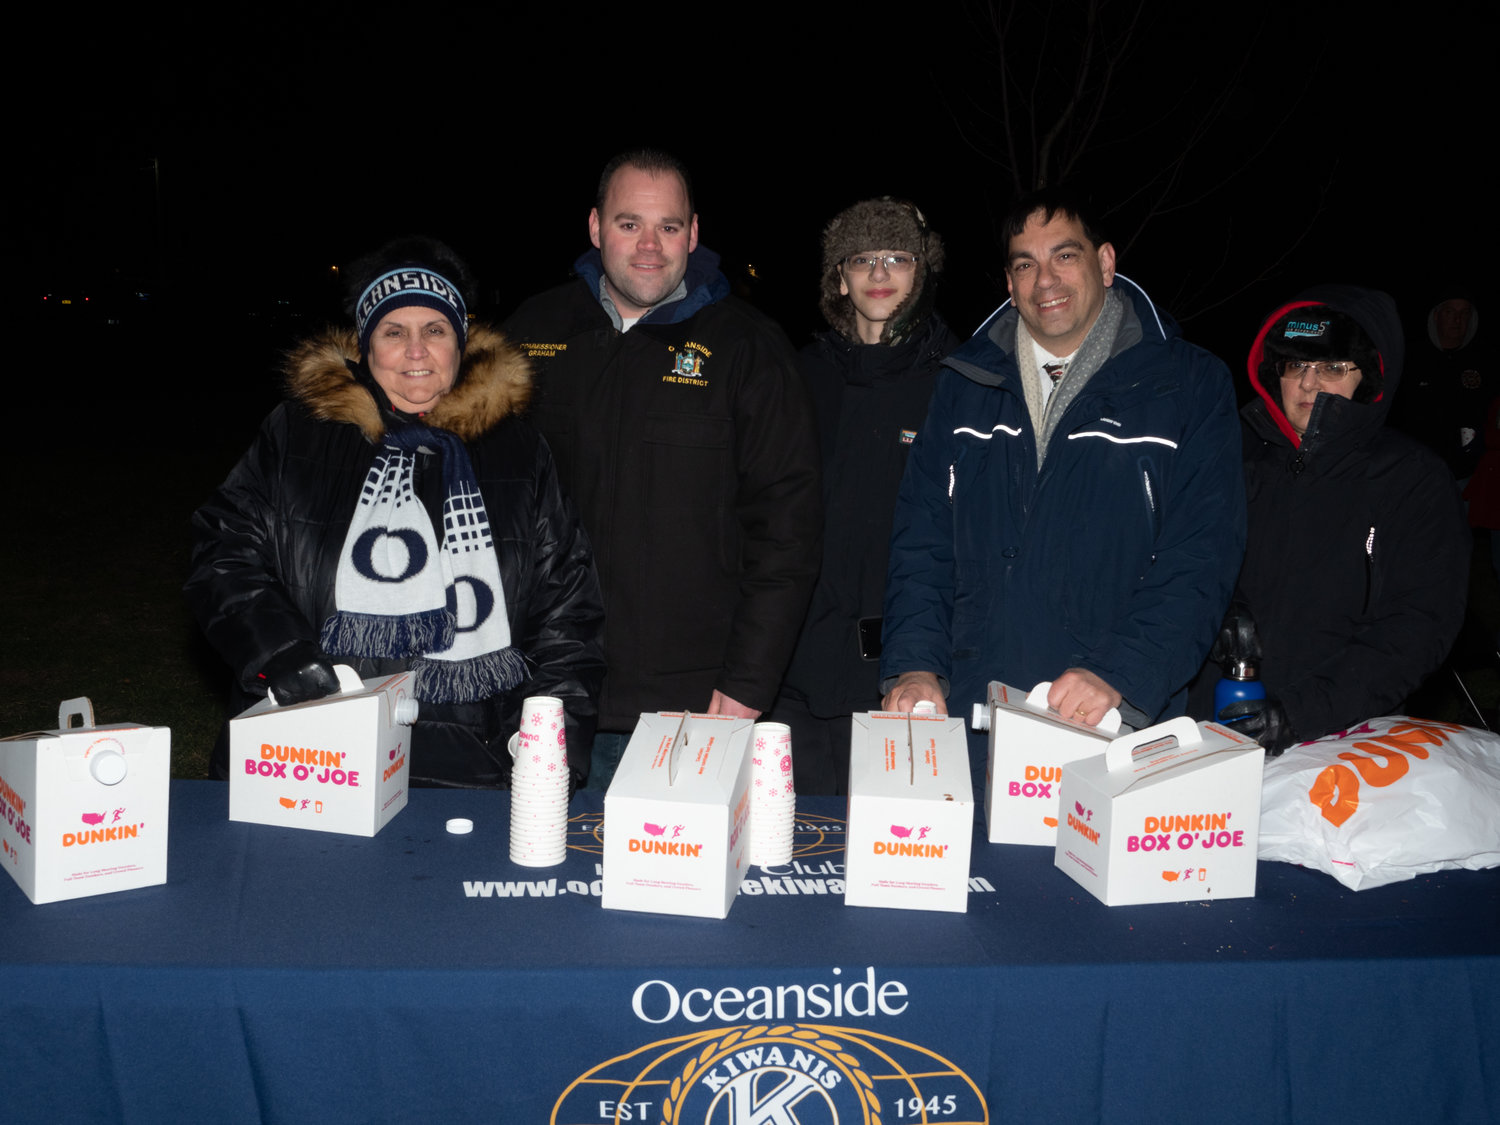 Members of the Kiwanis Club handed out coffee and treats to attendees.